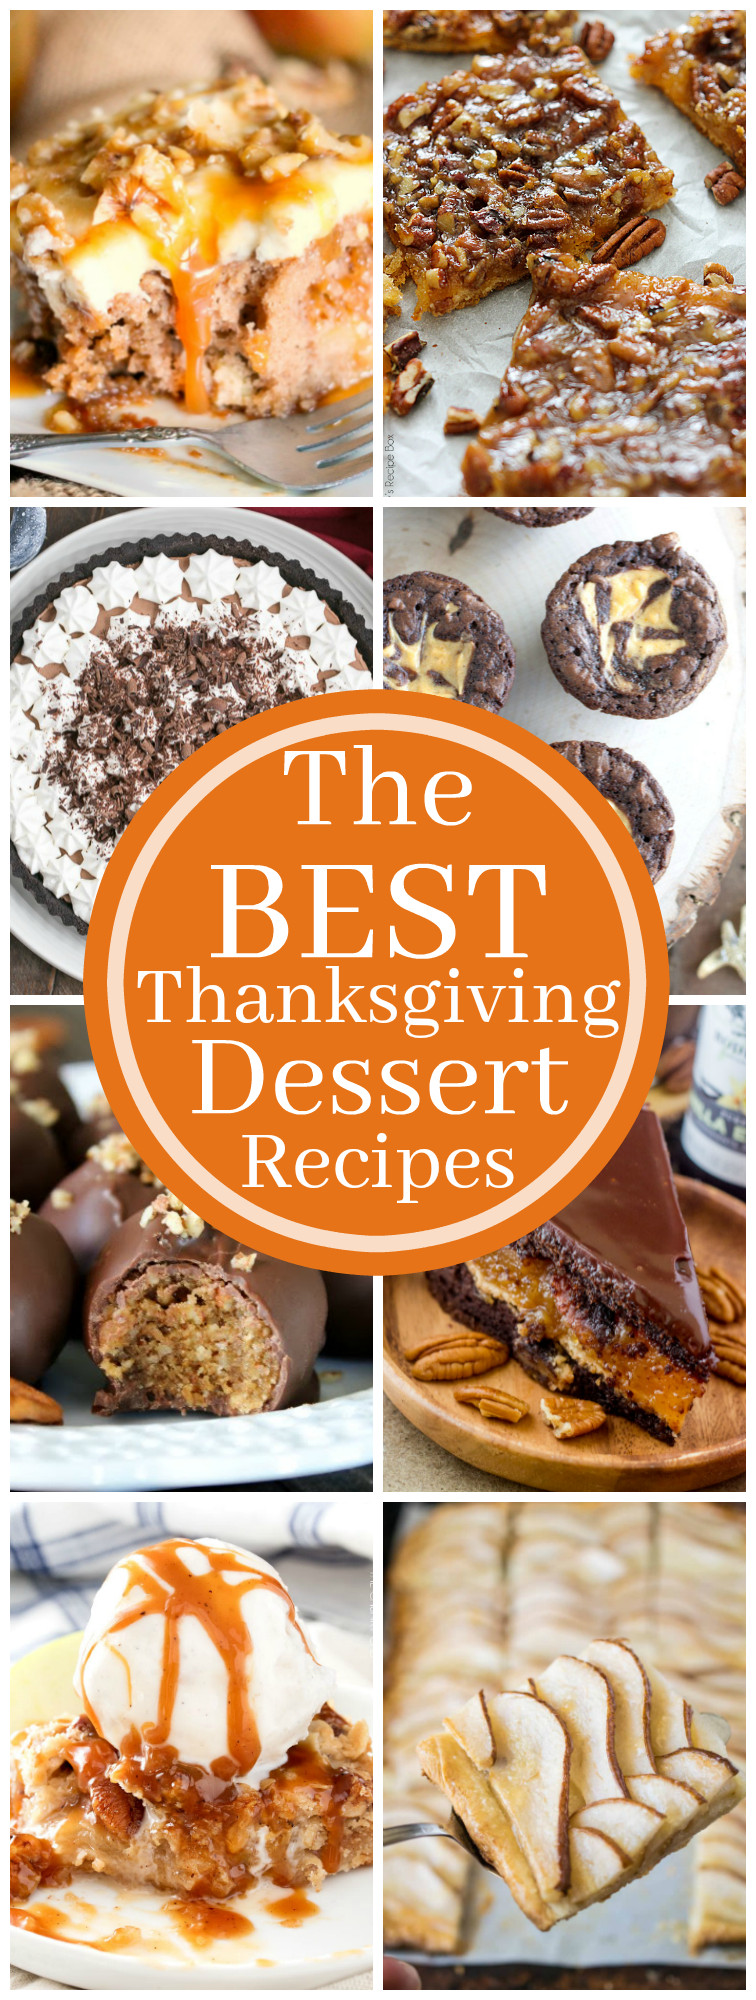 Thanksgiving Desserts Recipes  The Best Thanksgiving Desserts Savory Experiments